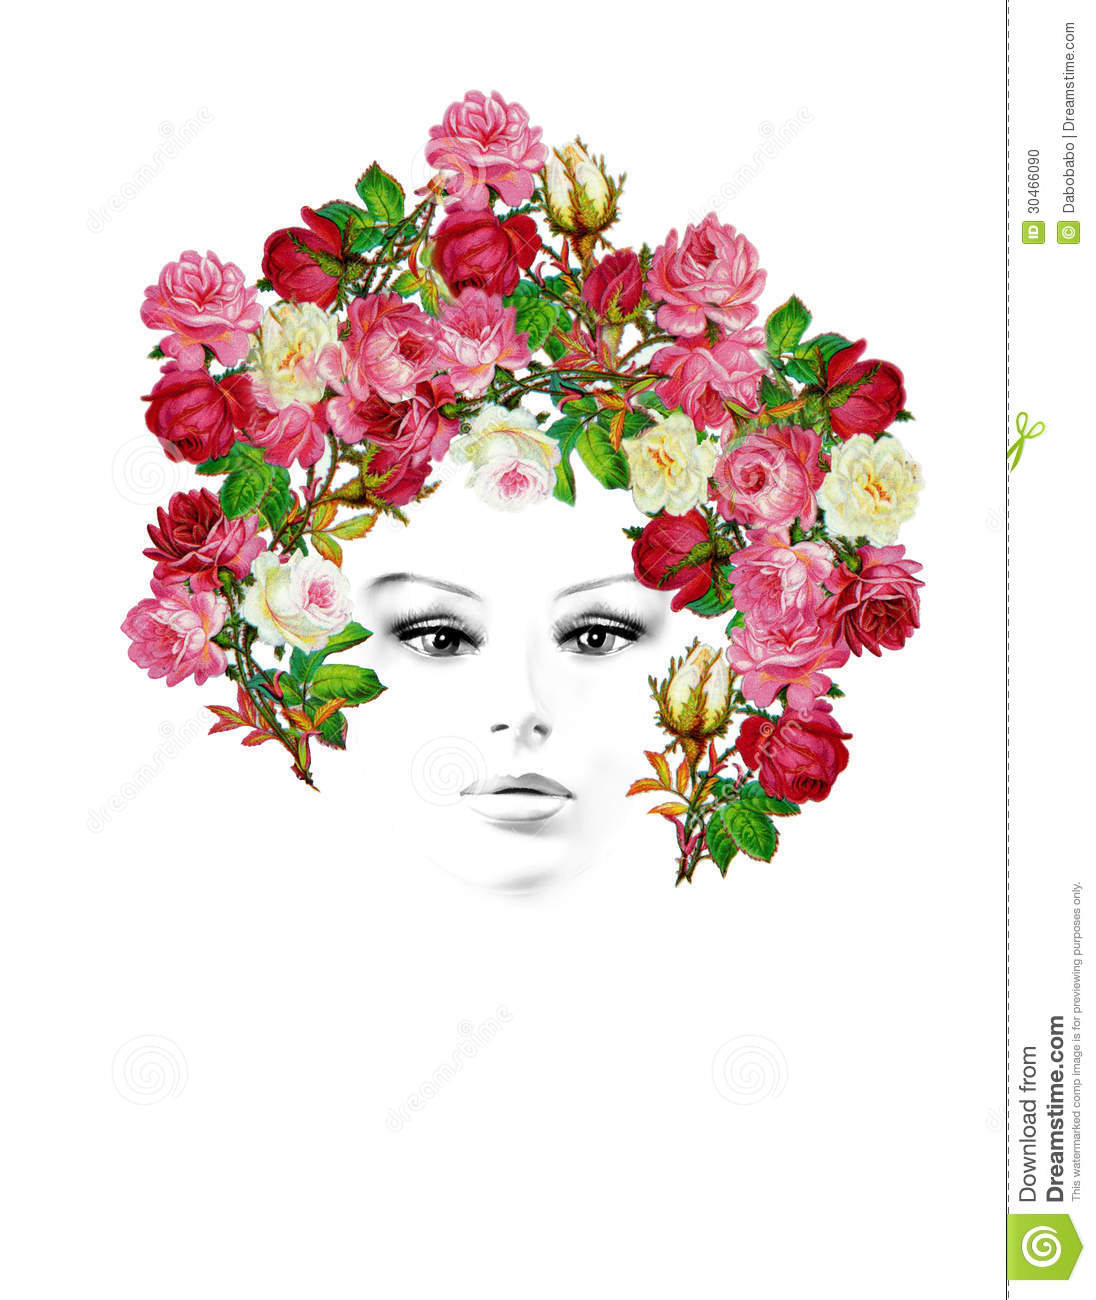 Retro vintage drawing of a girl with colorful roses in her hairs.